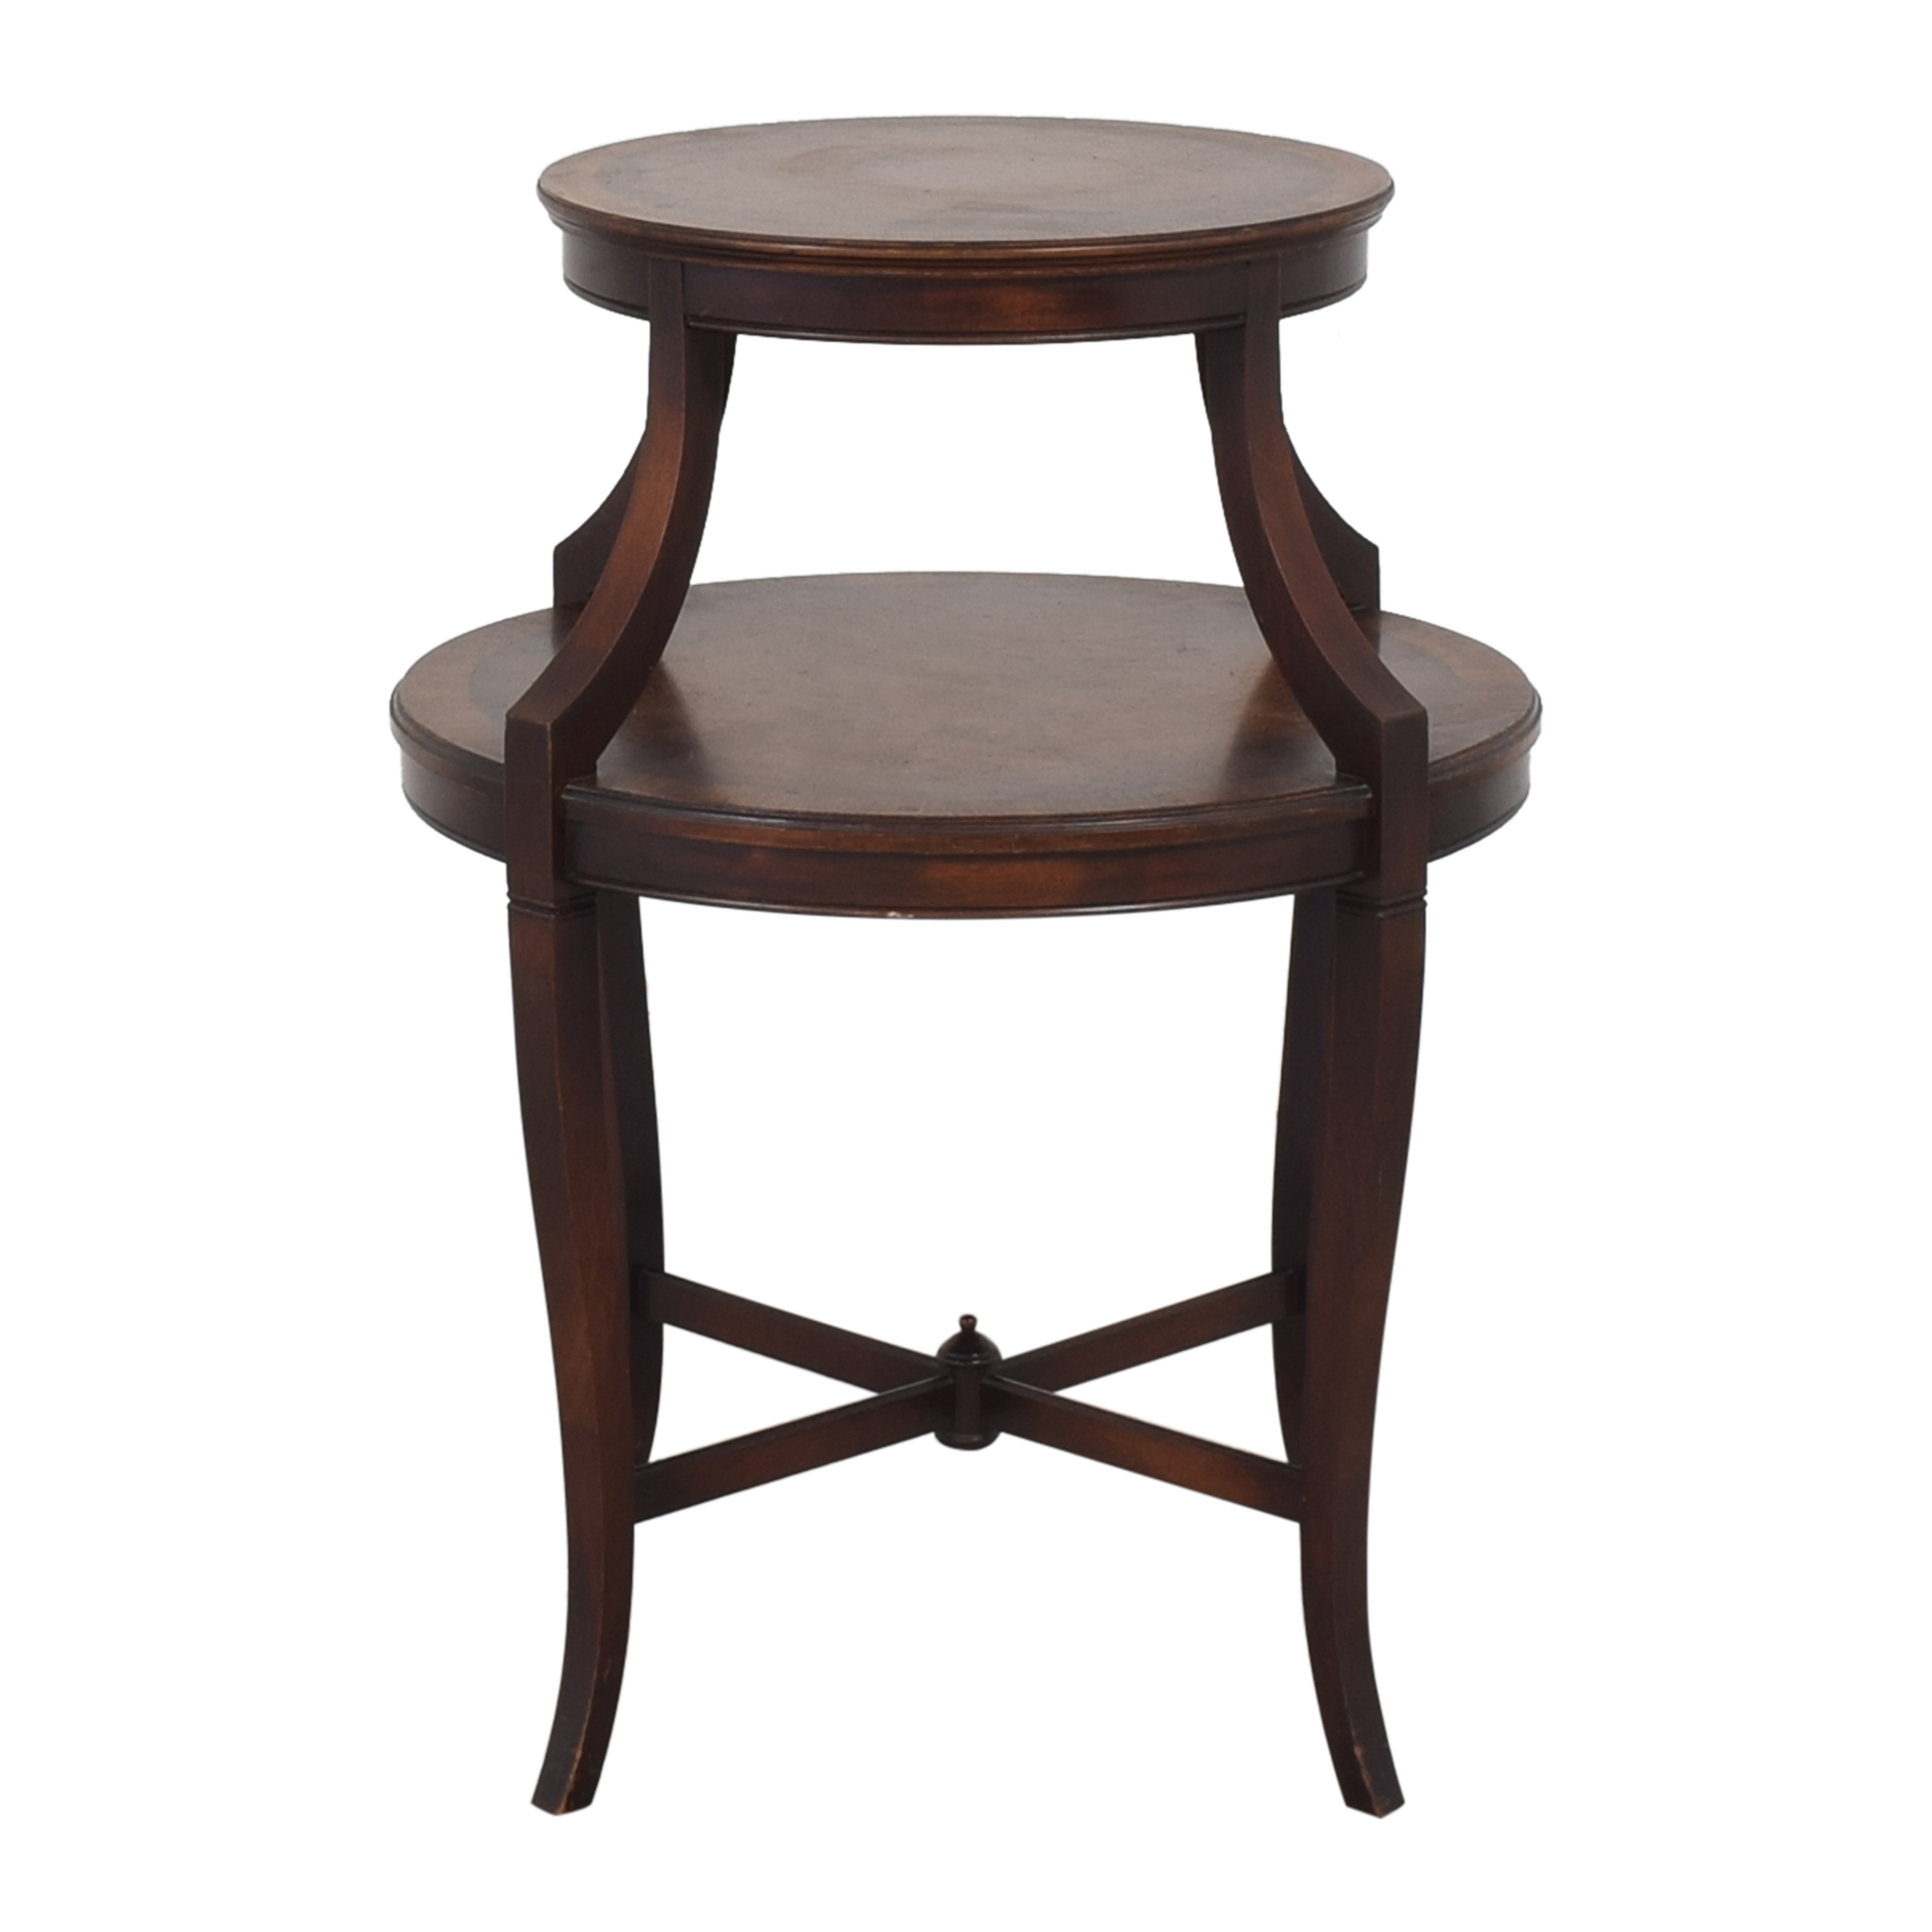 Two Tier Round End Table